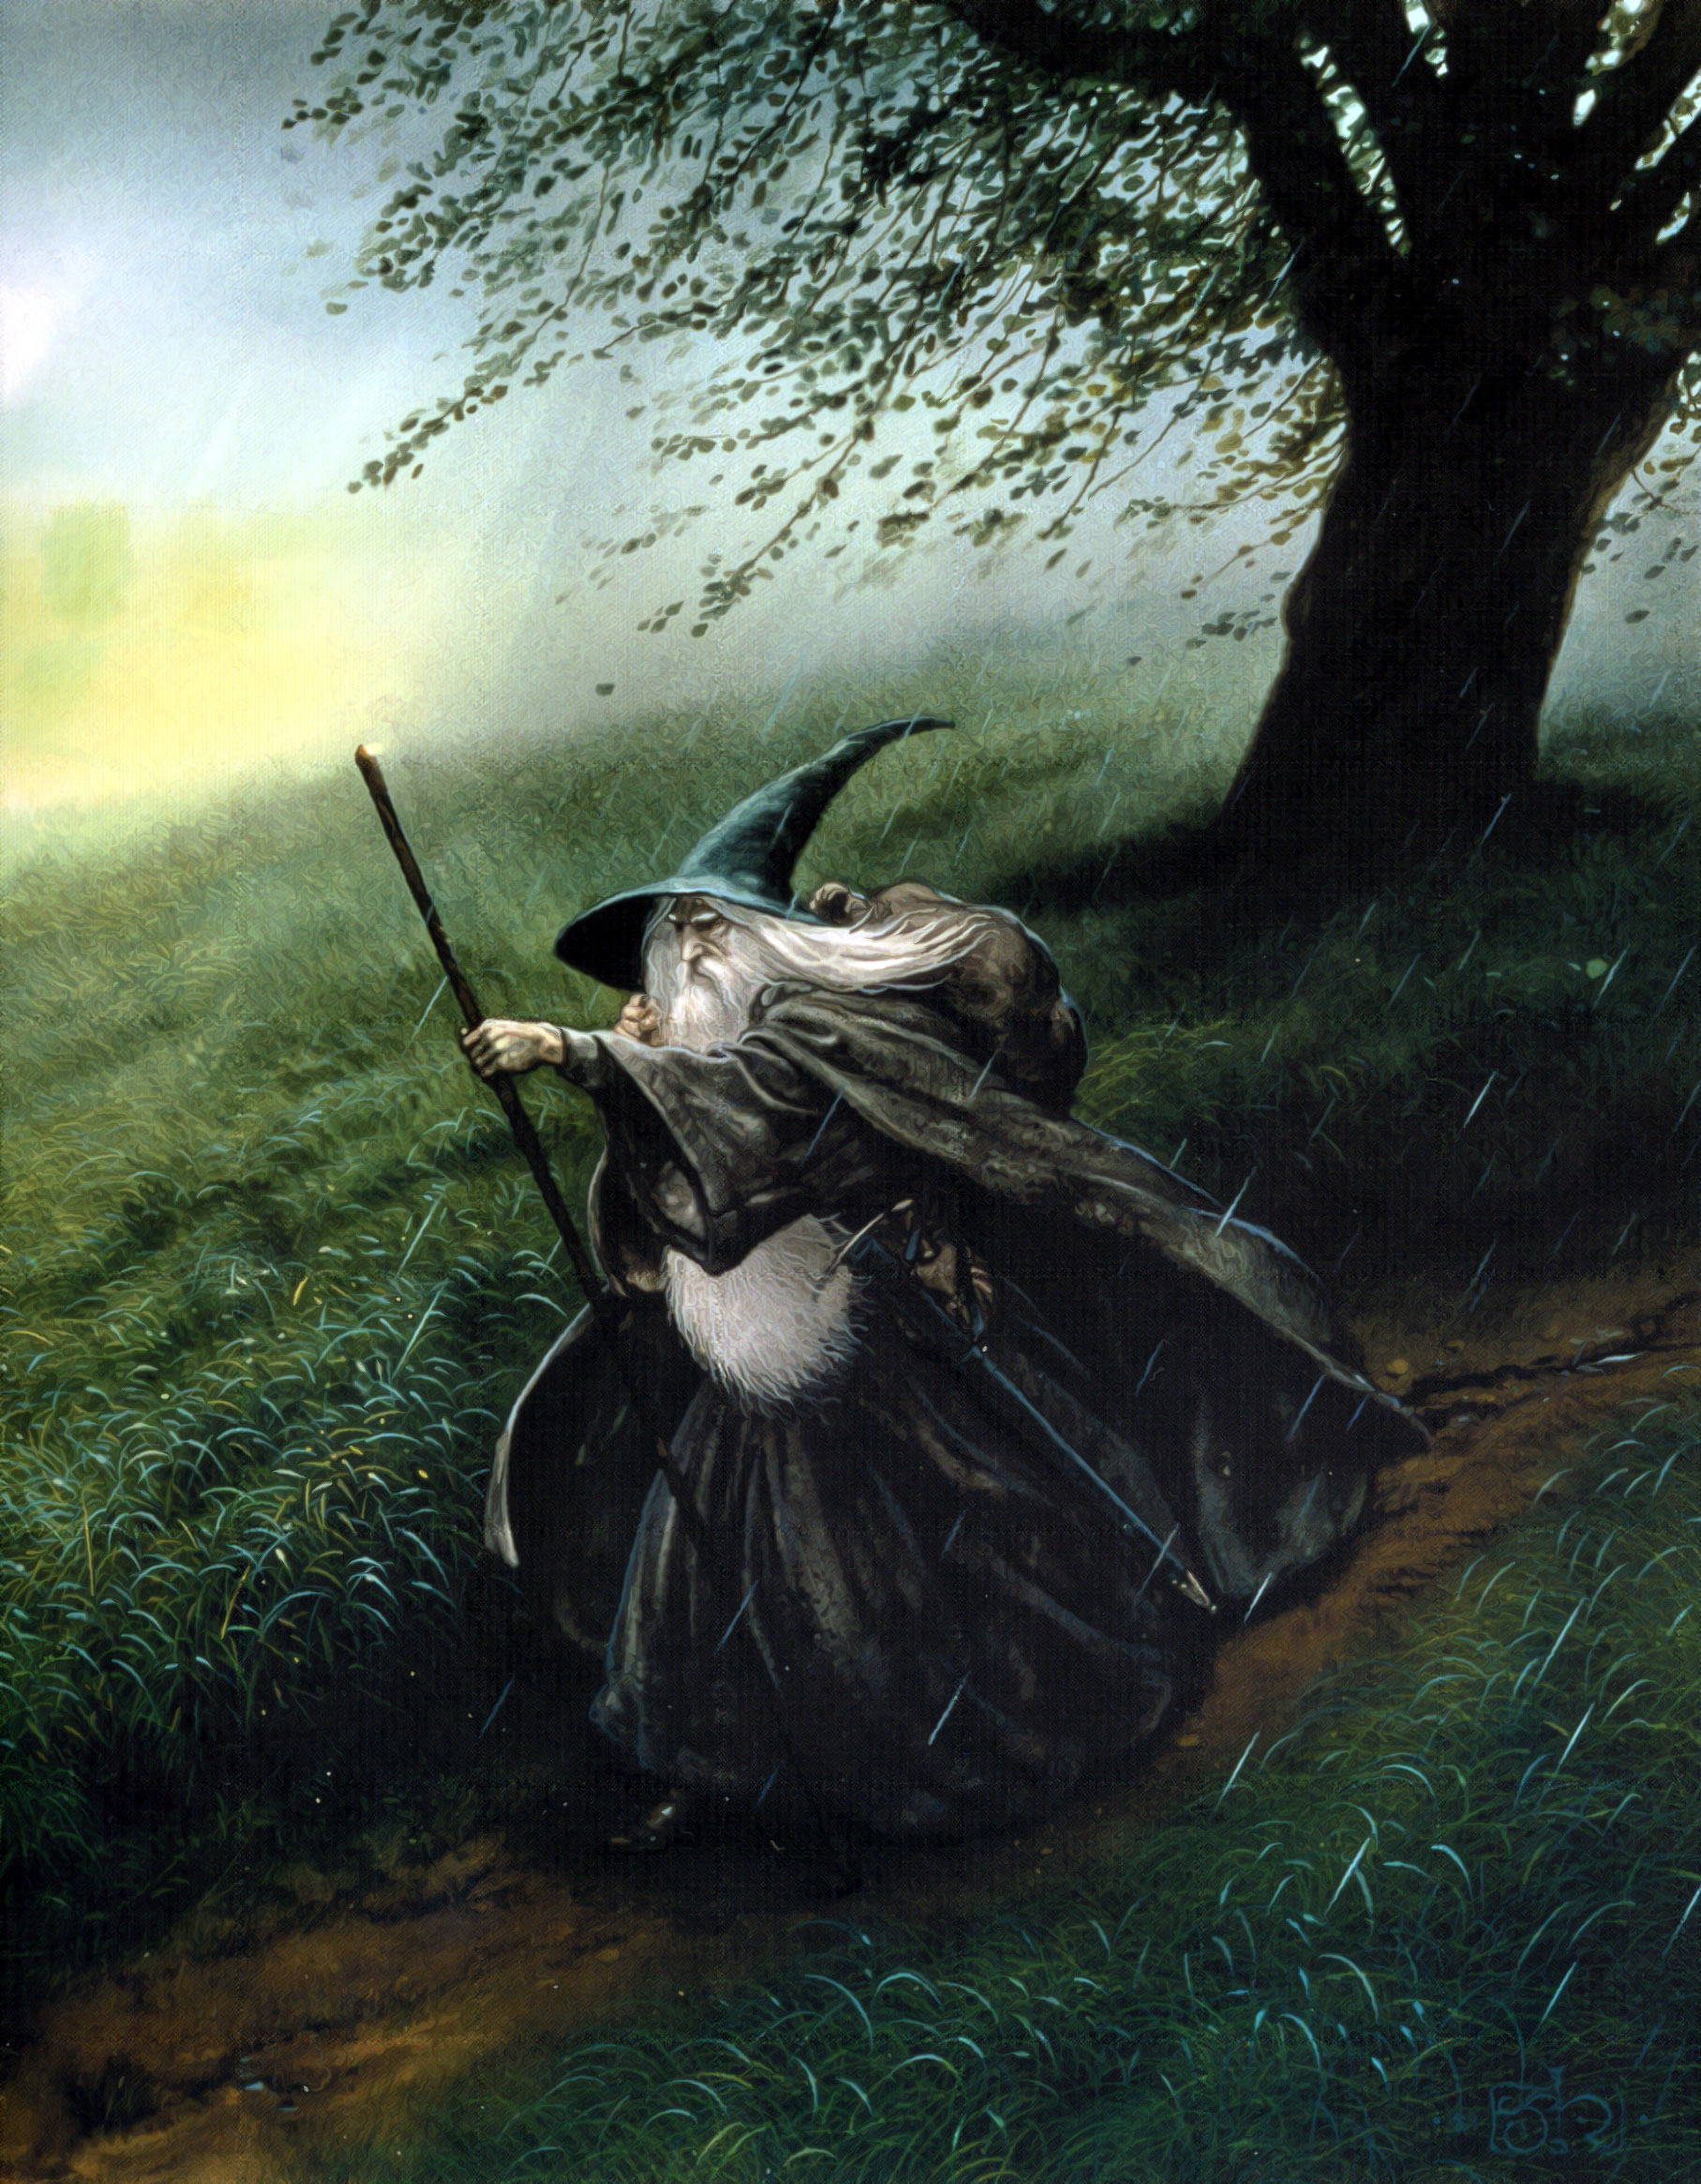 Gandalf the lord of HD Wallpaper